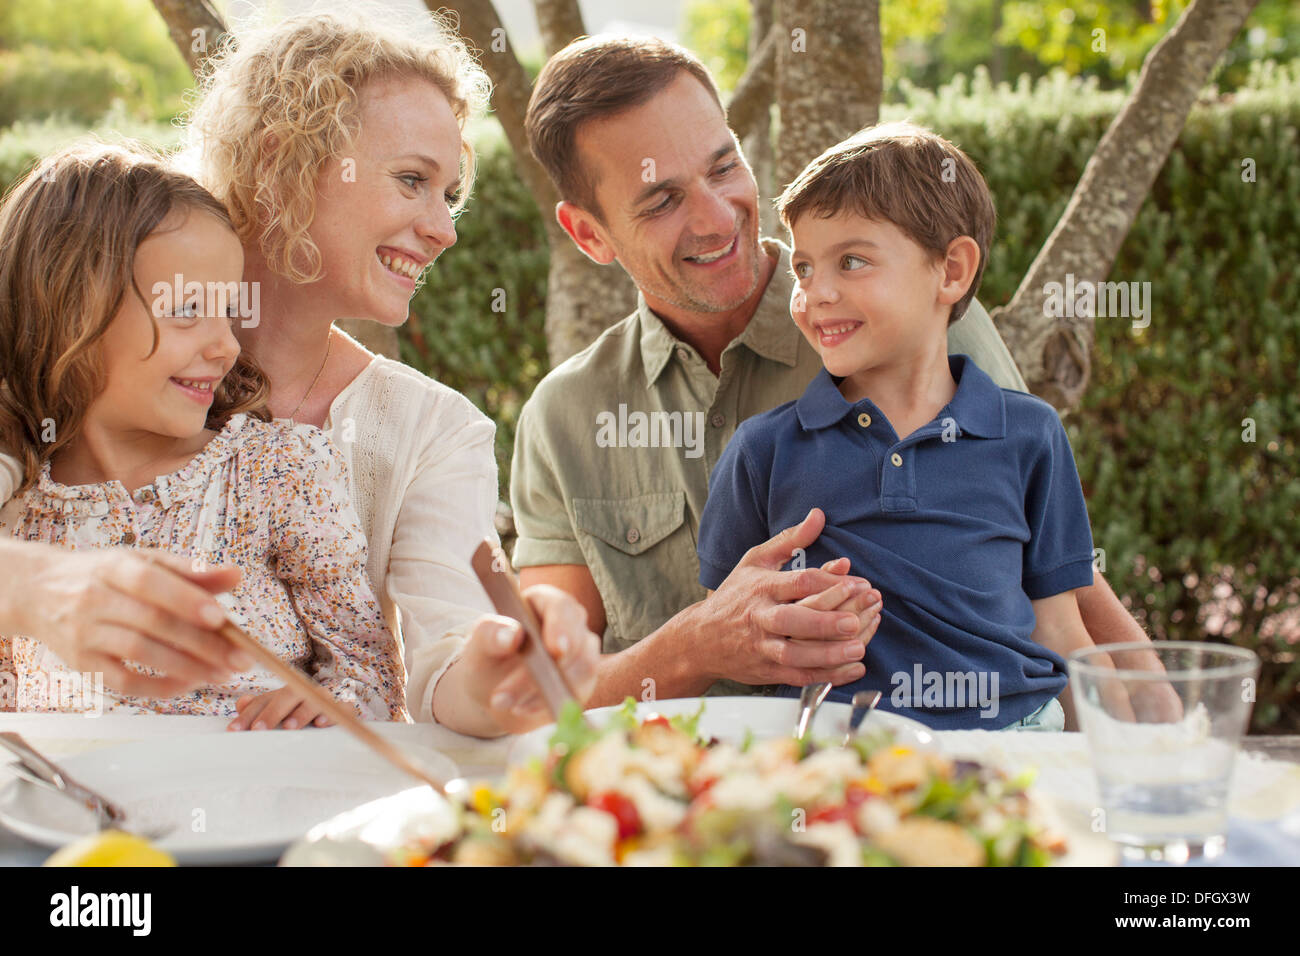 Family eating outdoors Banque D'Images